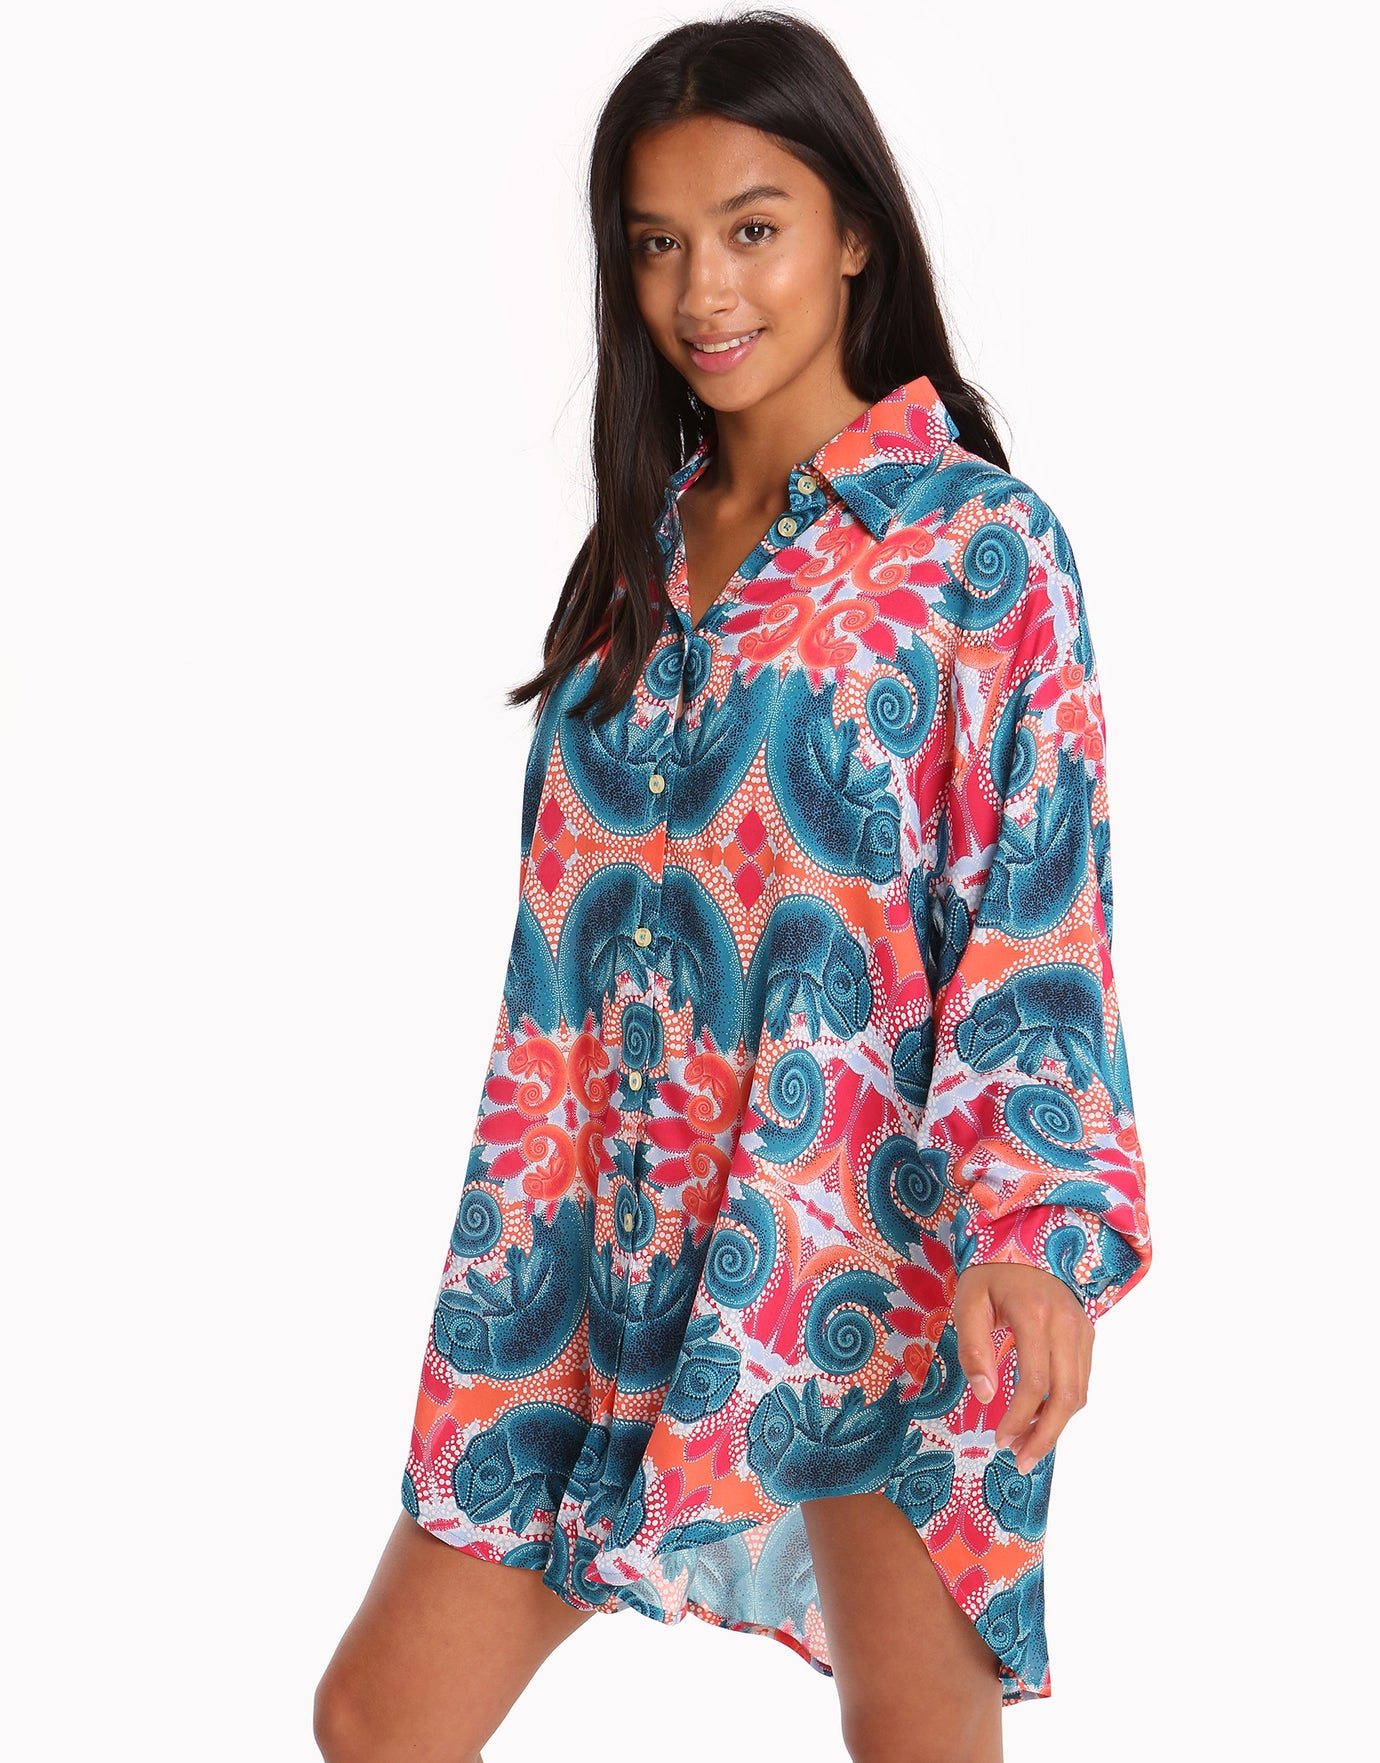 Paolita Zahur Open Back Beach Shirt - Print